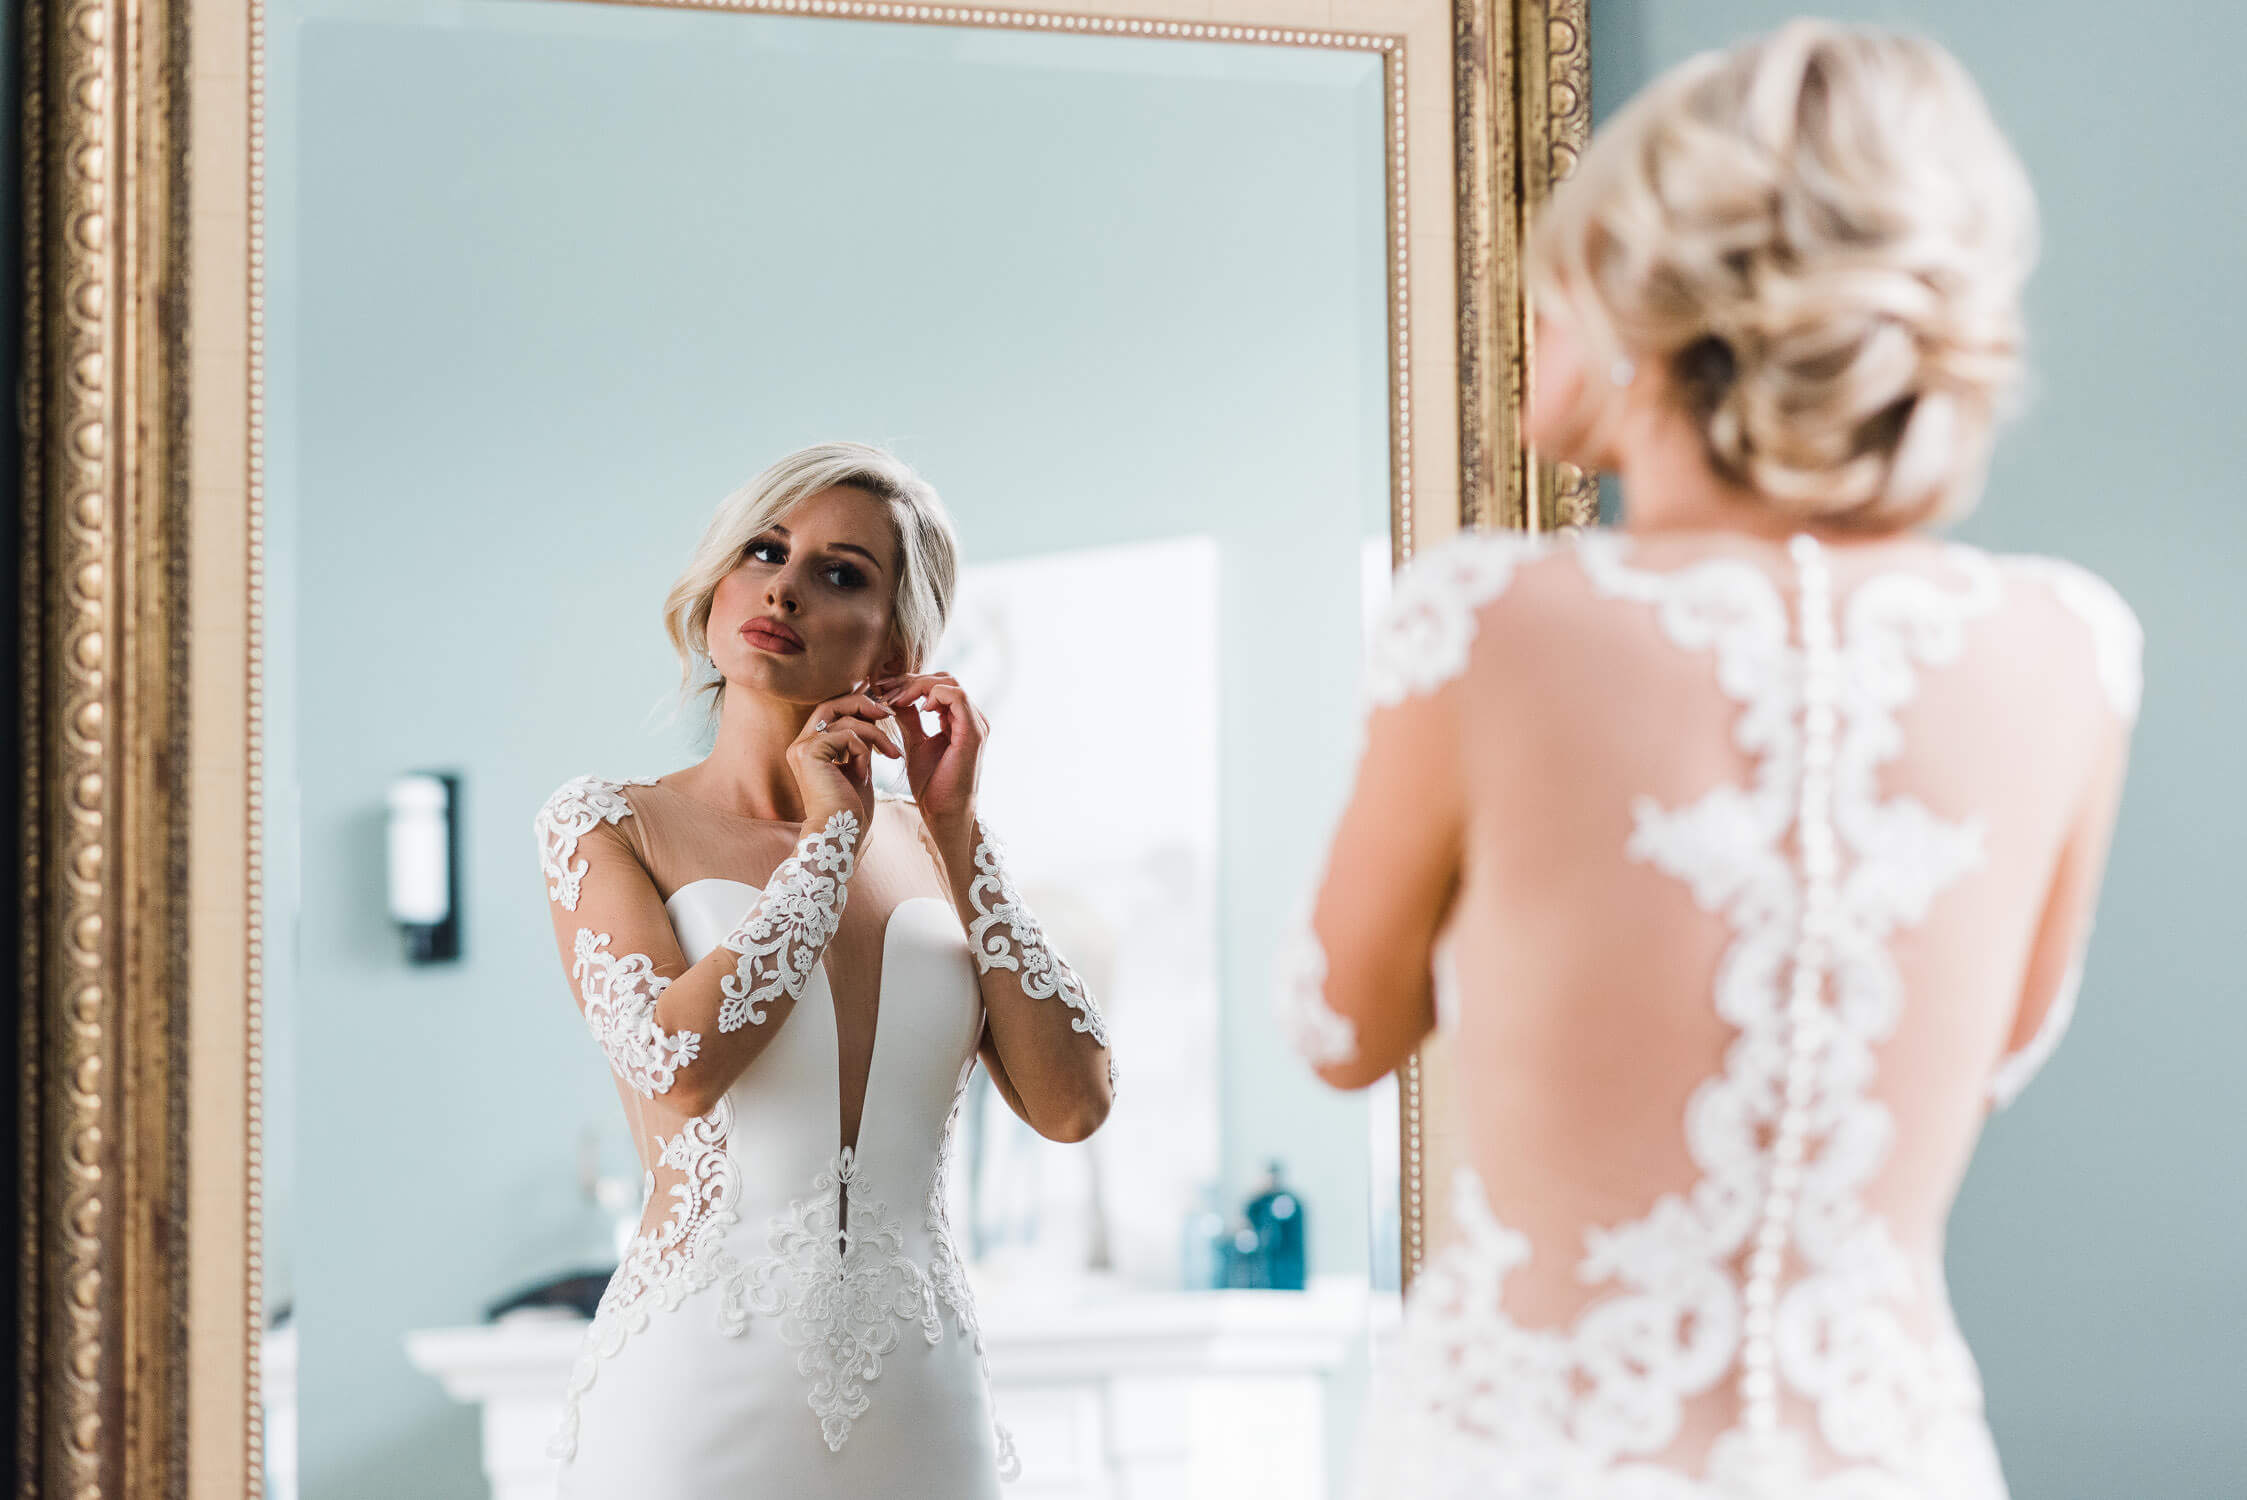 Bride gets ready for wedding by putting on earrings